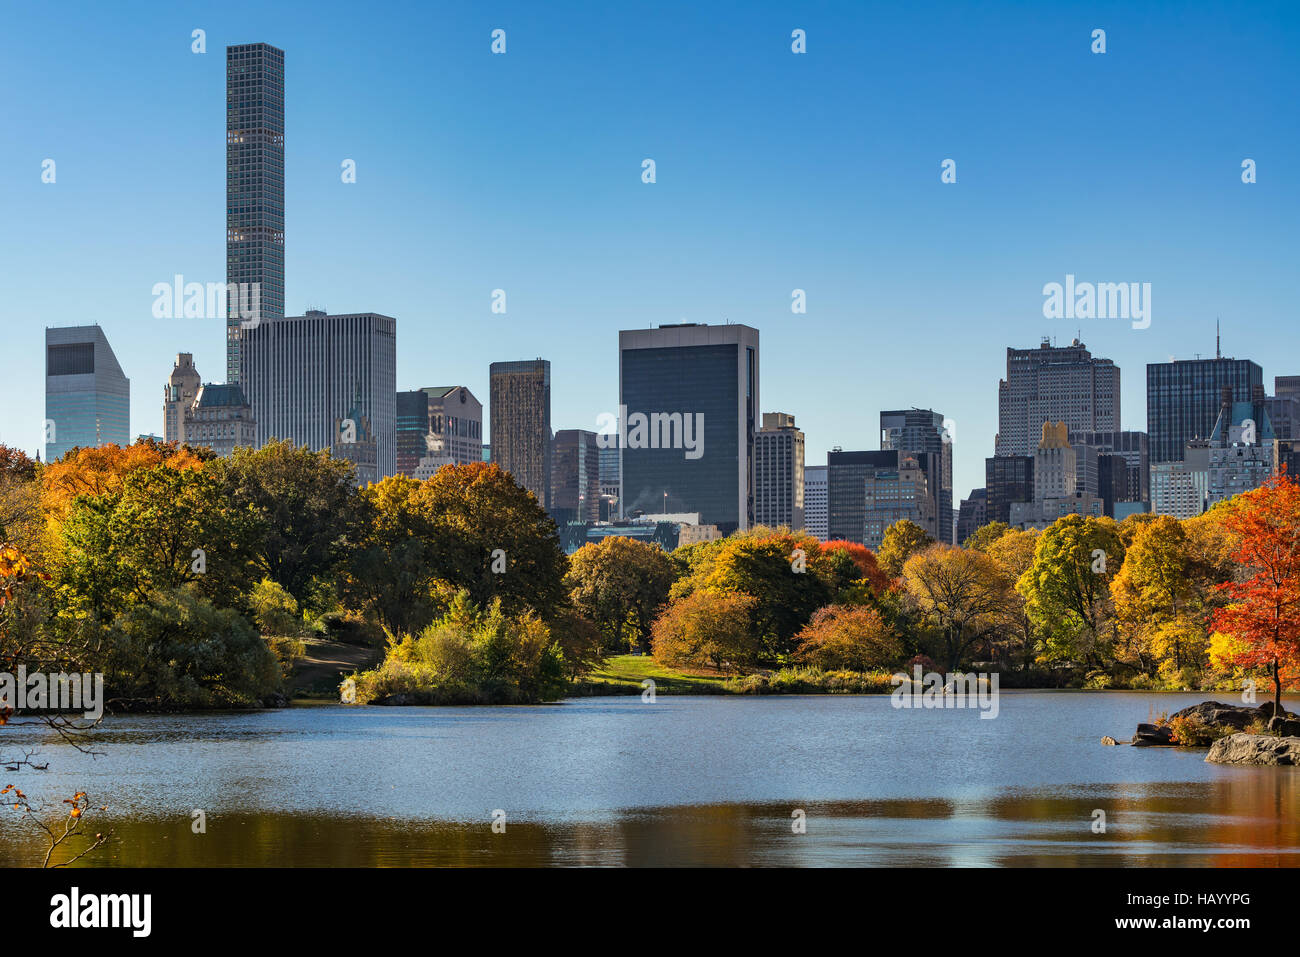 Fall in Central Park at The Lake with Midtown skyscrapers. Morning view with colorful Autumn foliage. Manhattan, - Stock Image